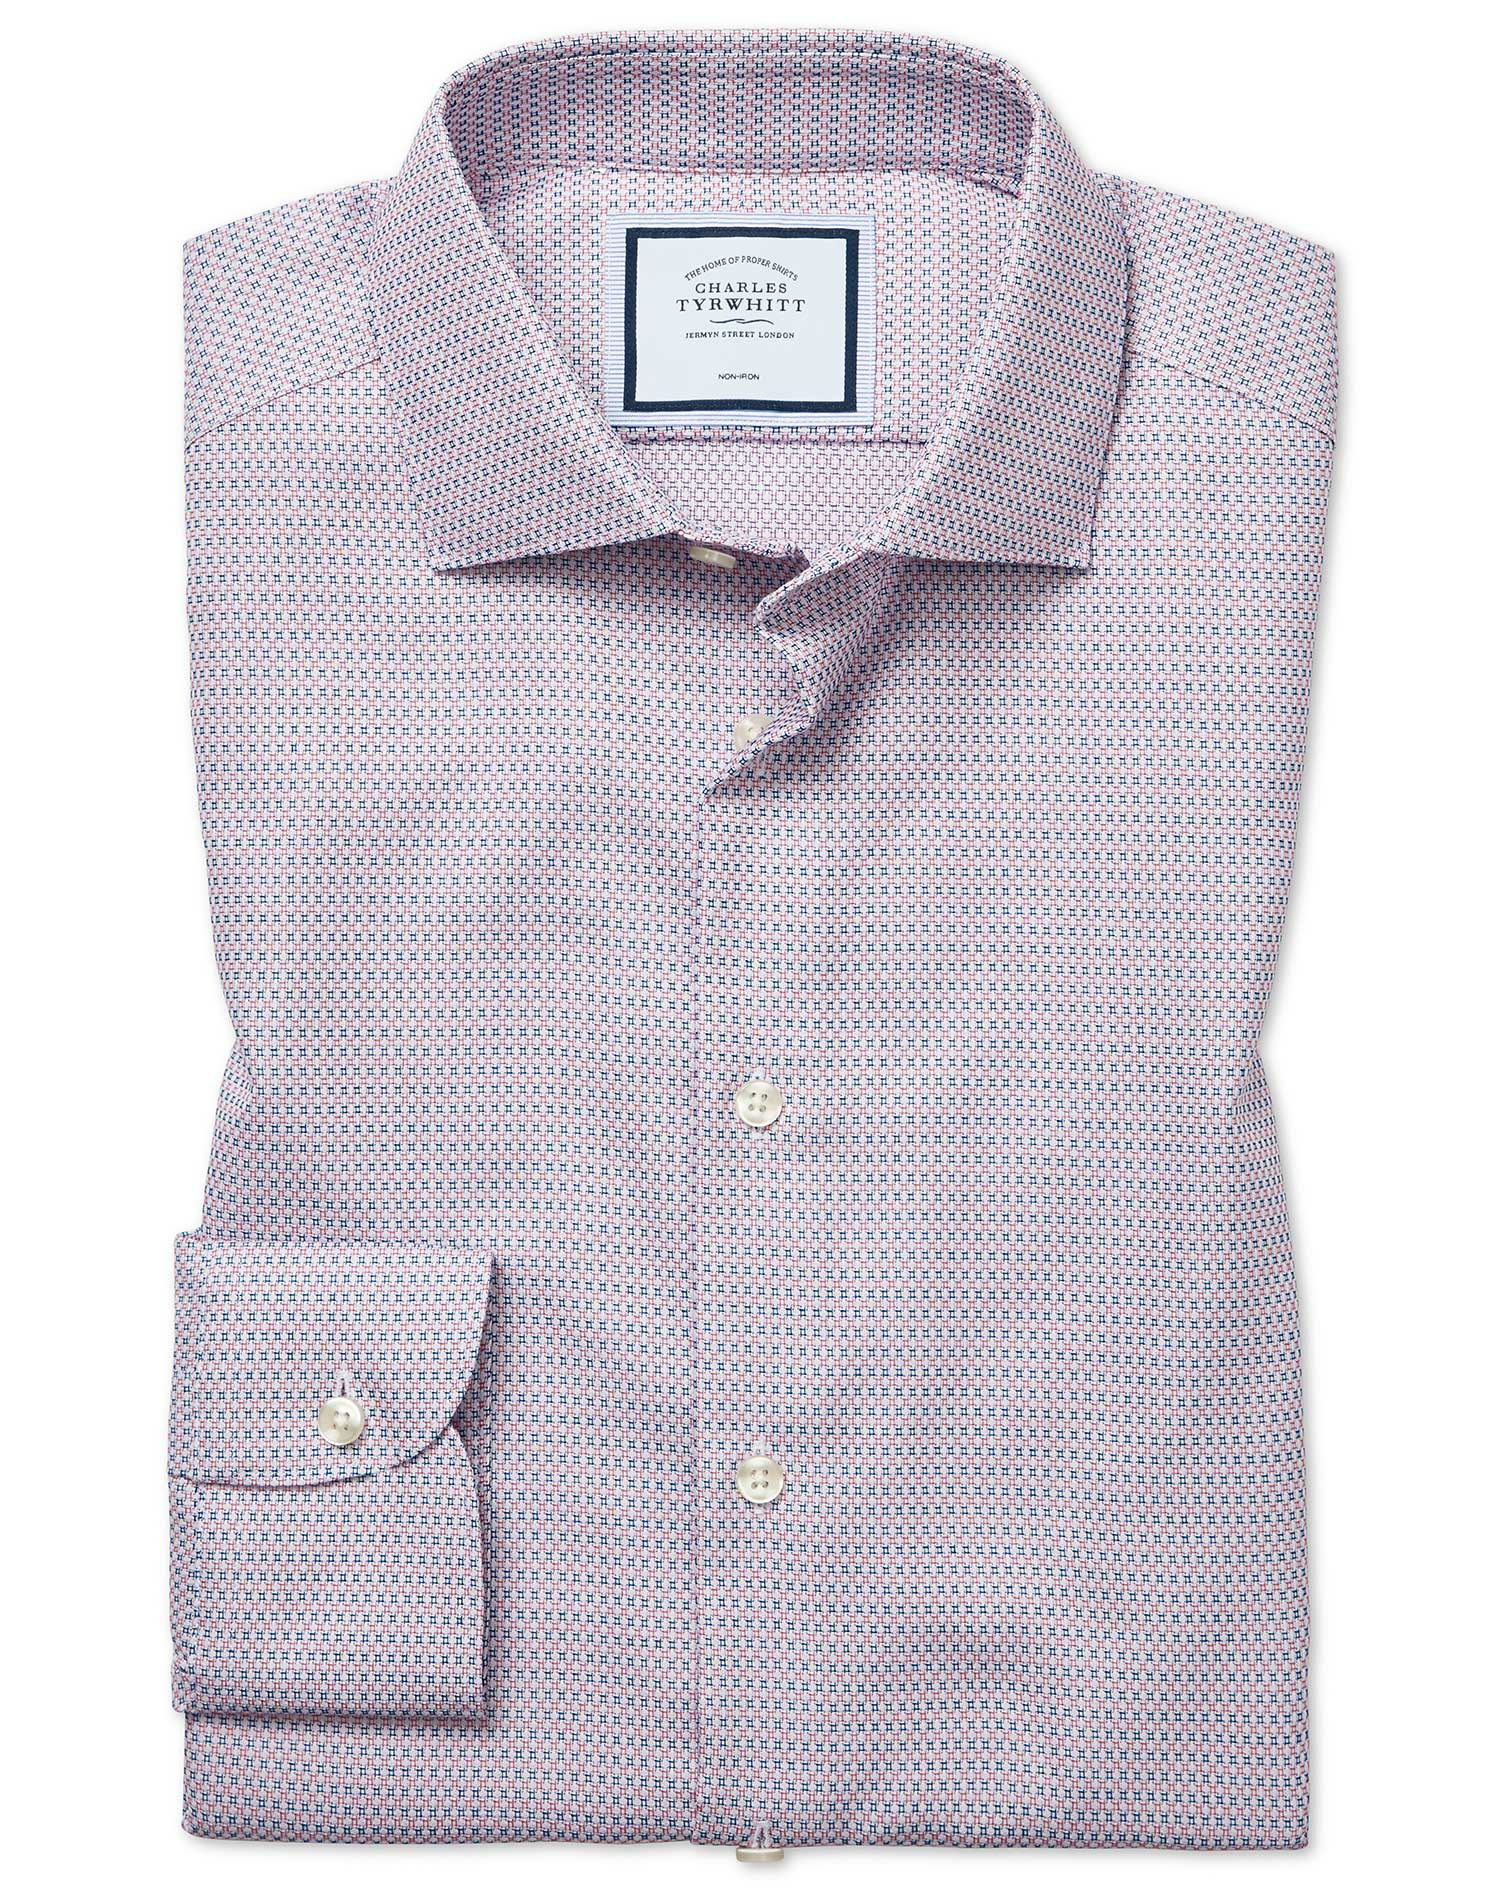 Slim Fit Non-Iron Natural Stretch Textures Pink and Navy Cotton Formal Shirt Single Cuff Size 15.5/3